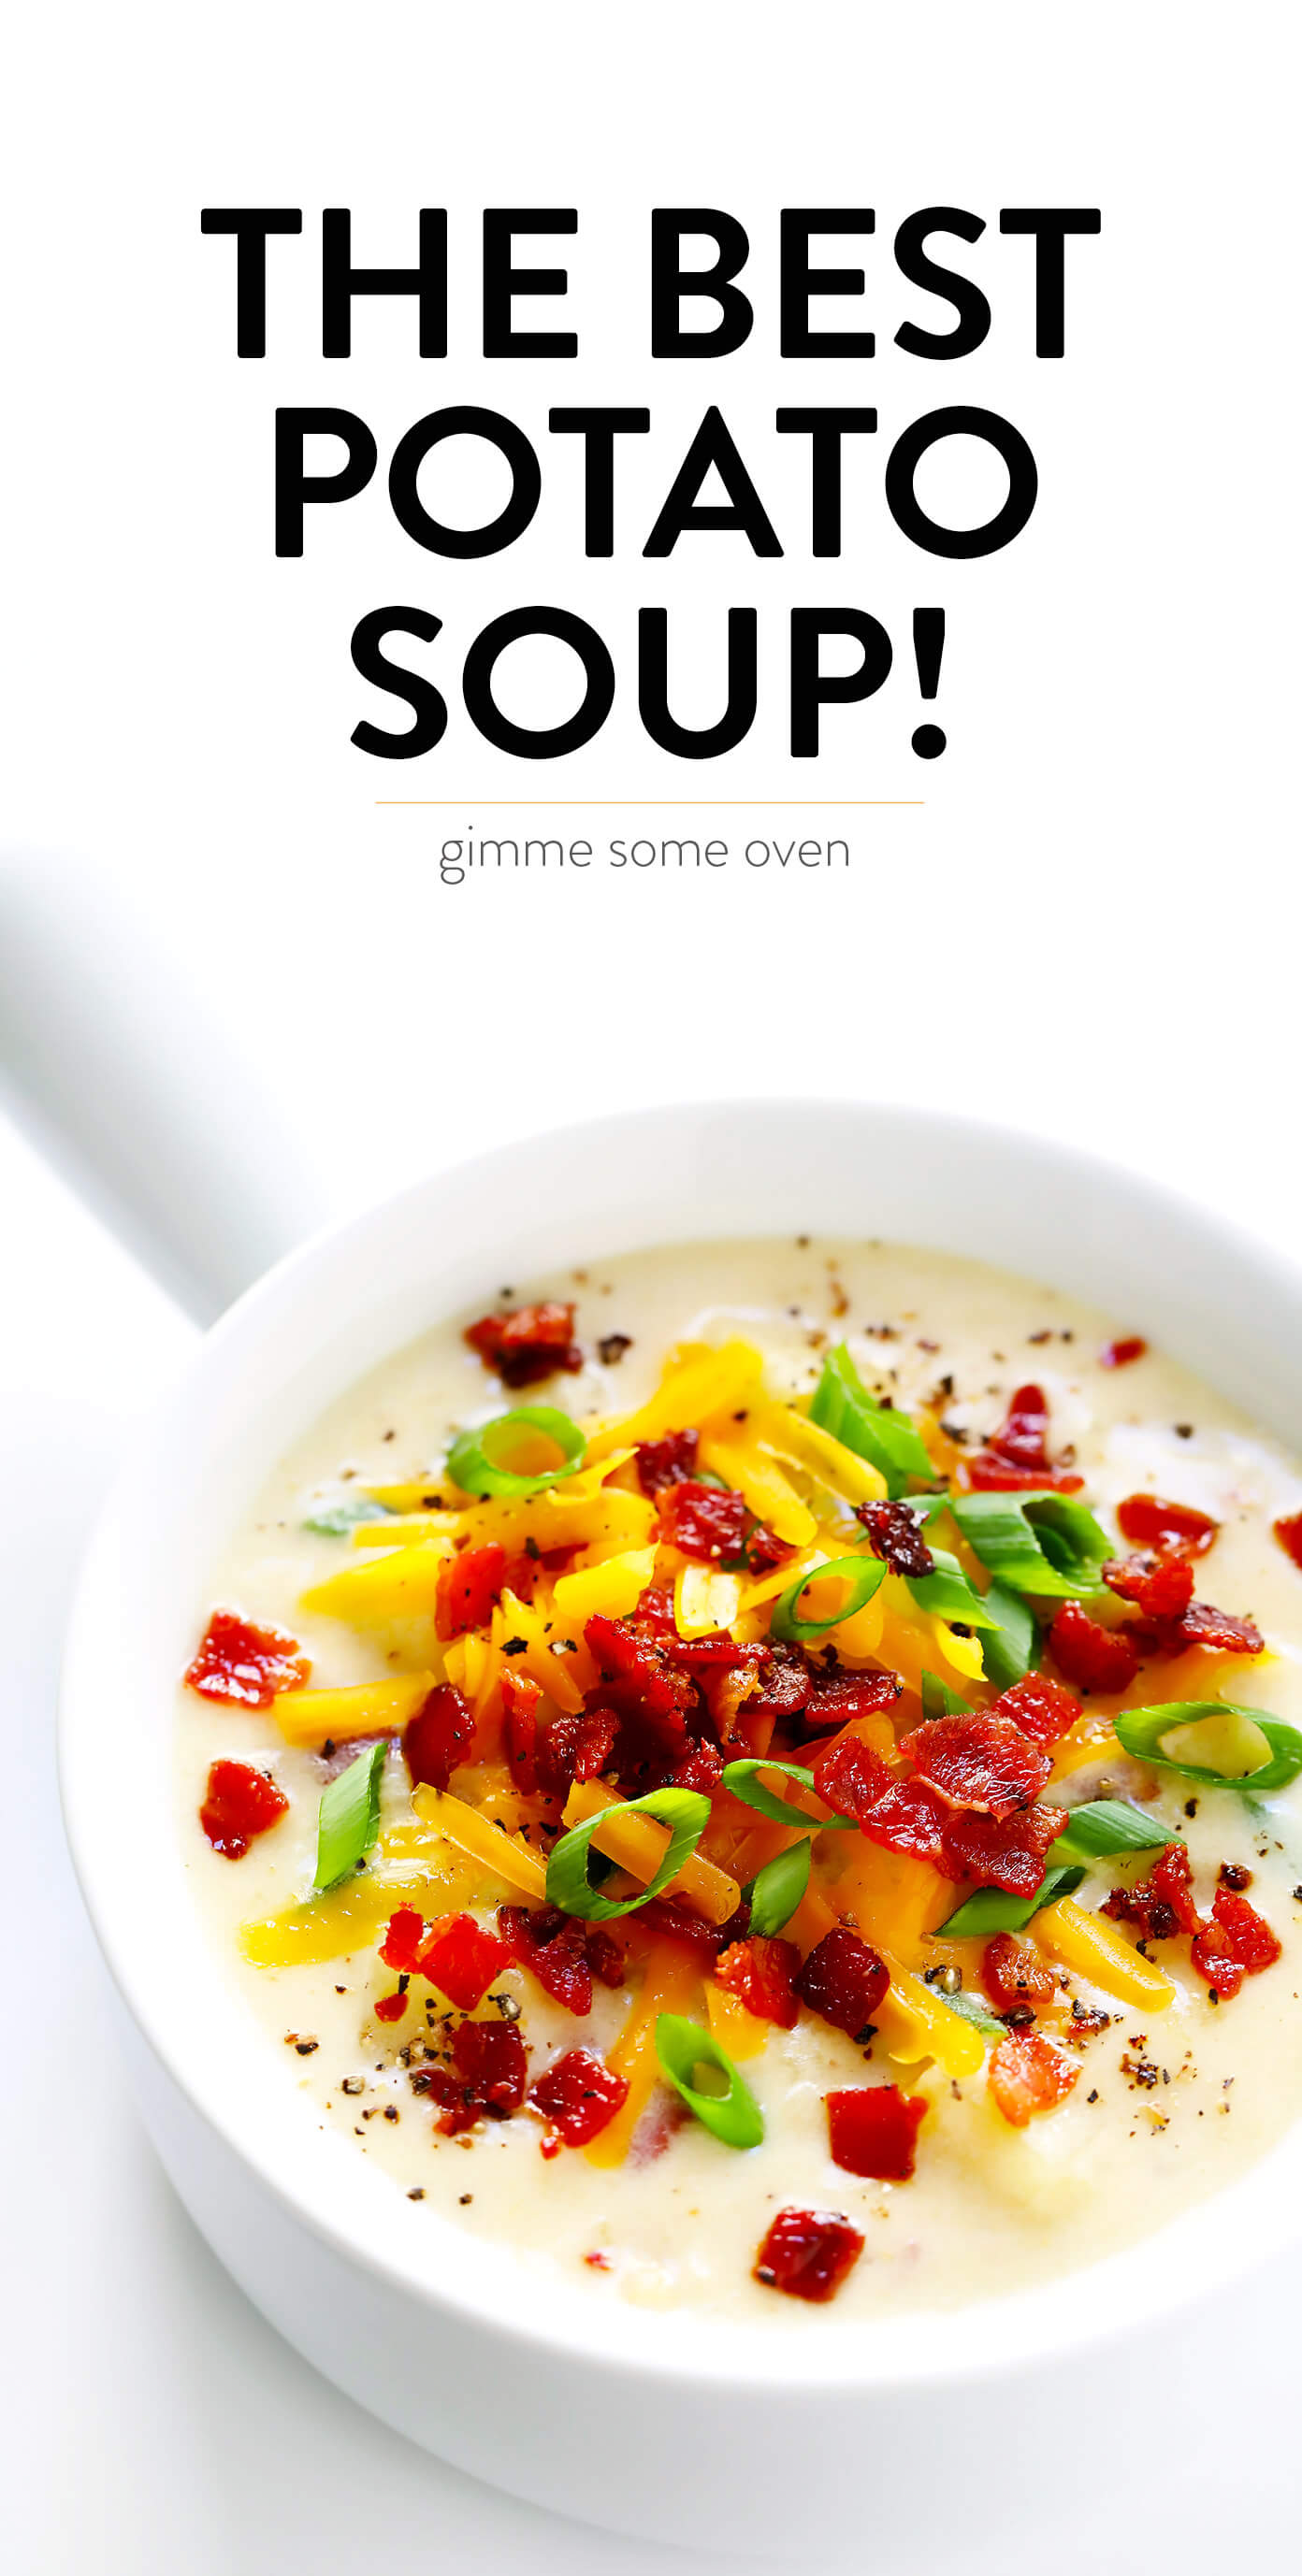 The BEST Potato Soup Recipe from Gimme Some Oven